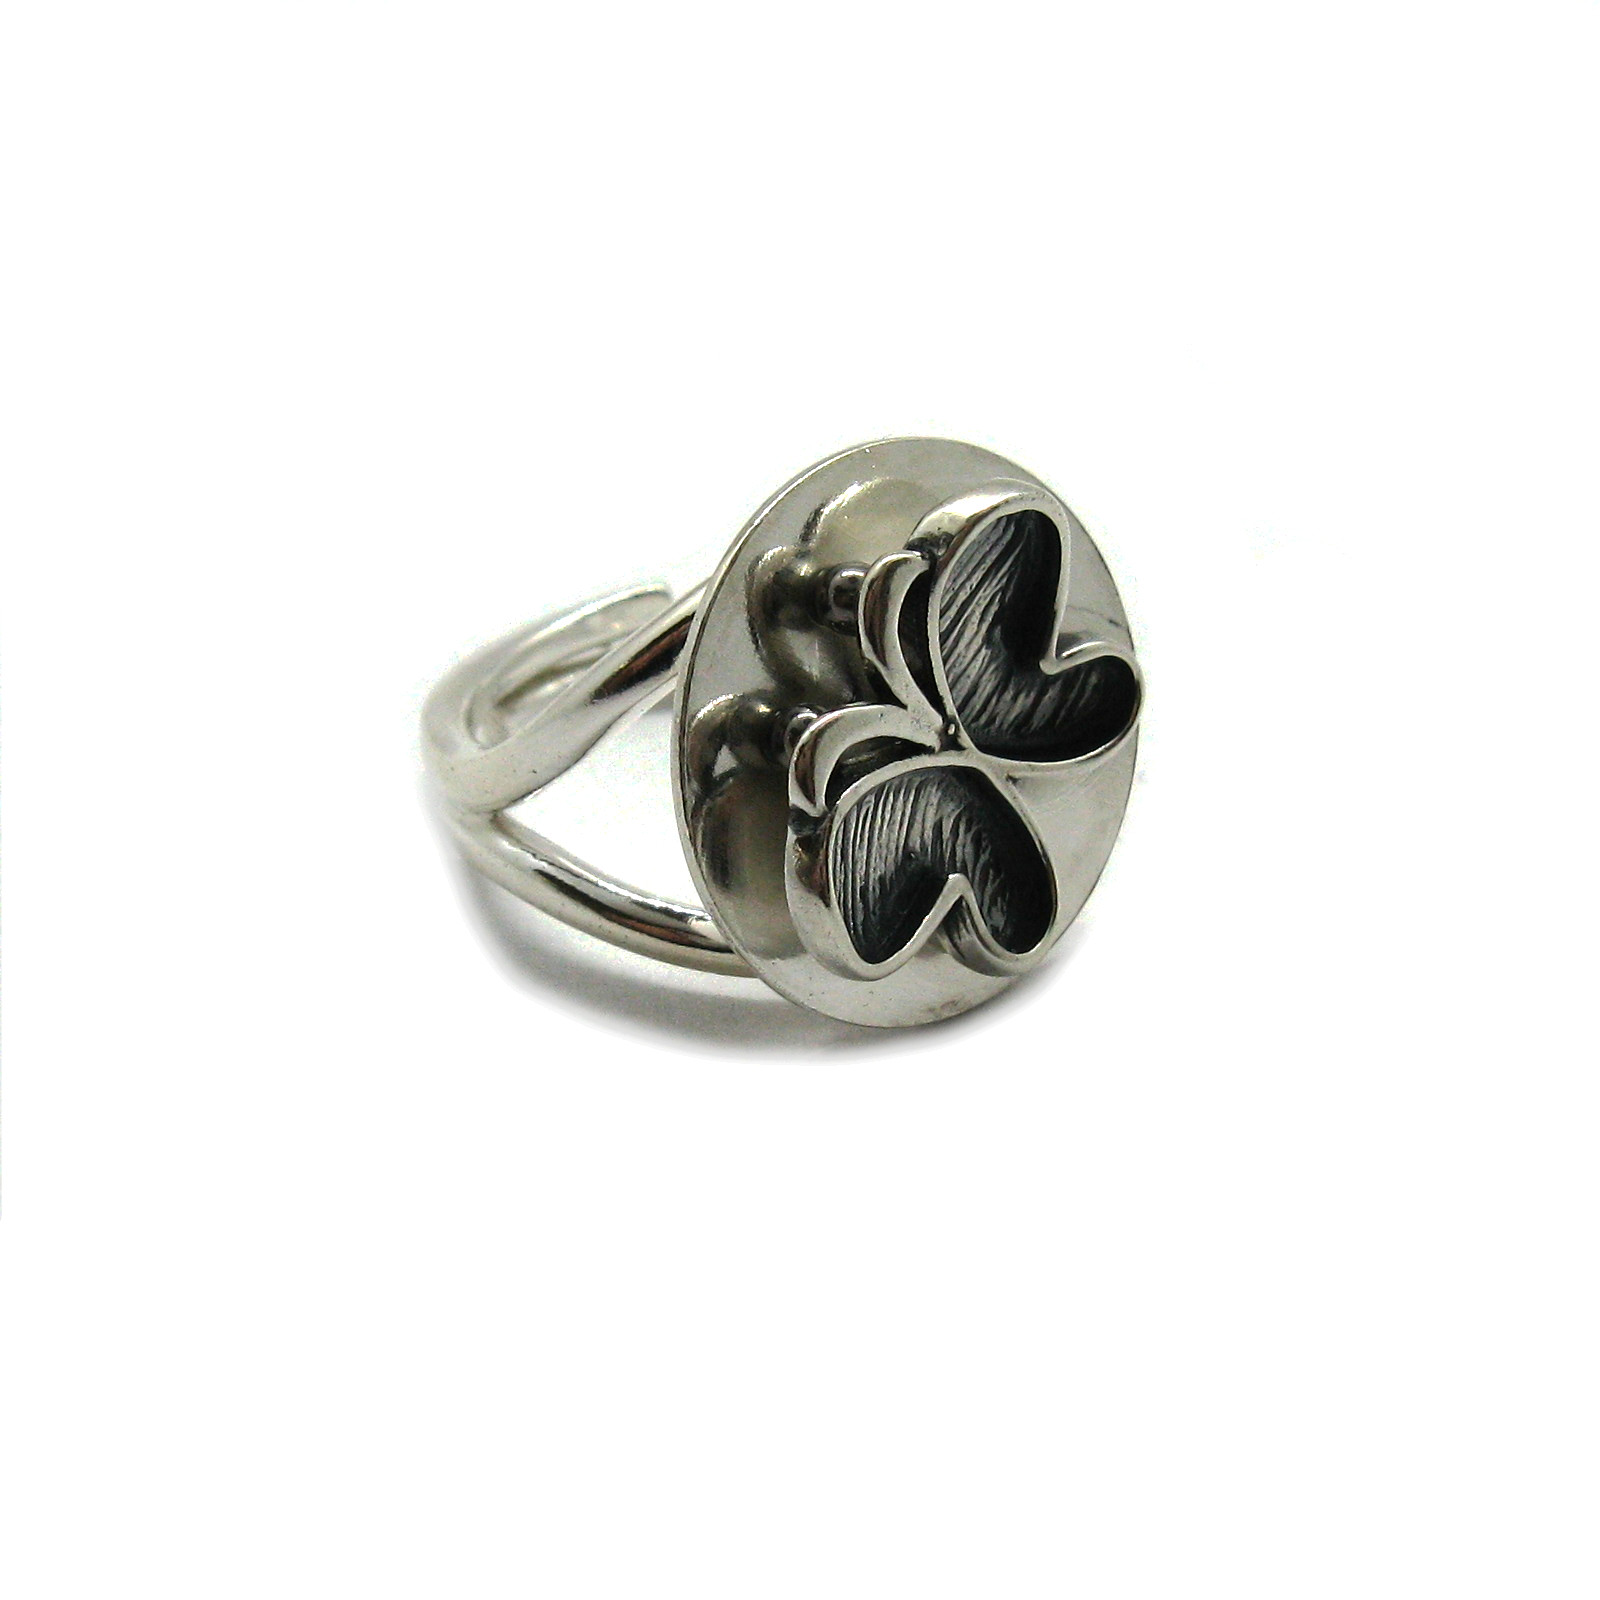 Silver ring - R001877